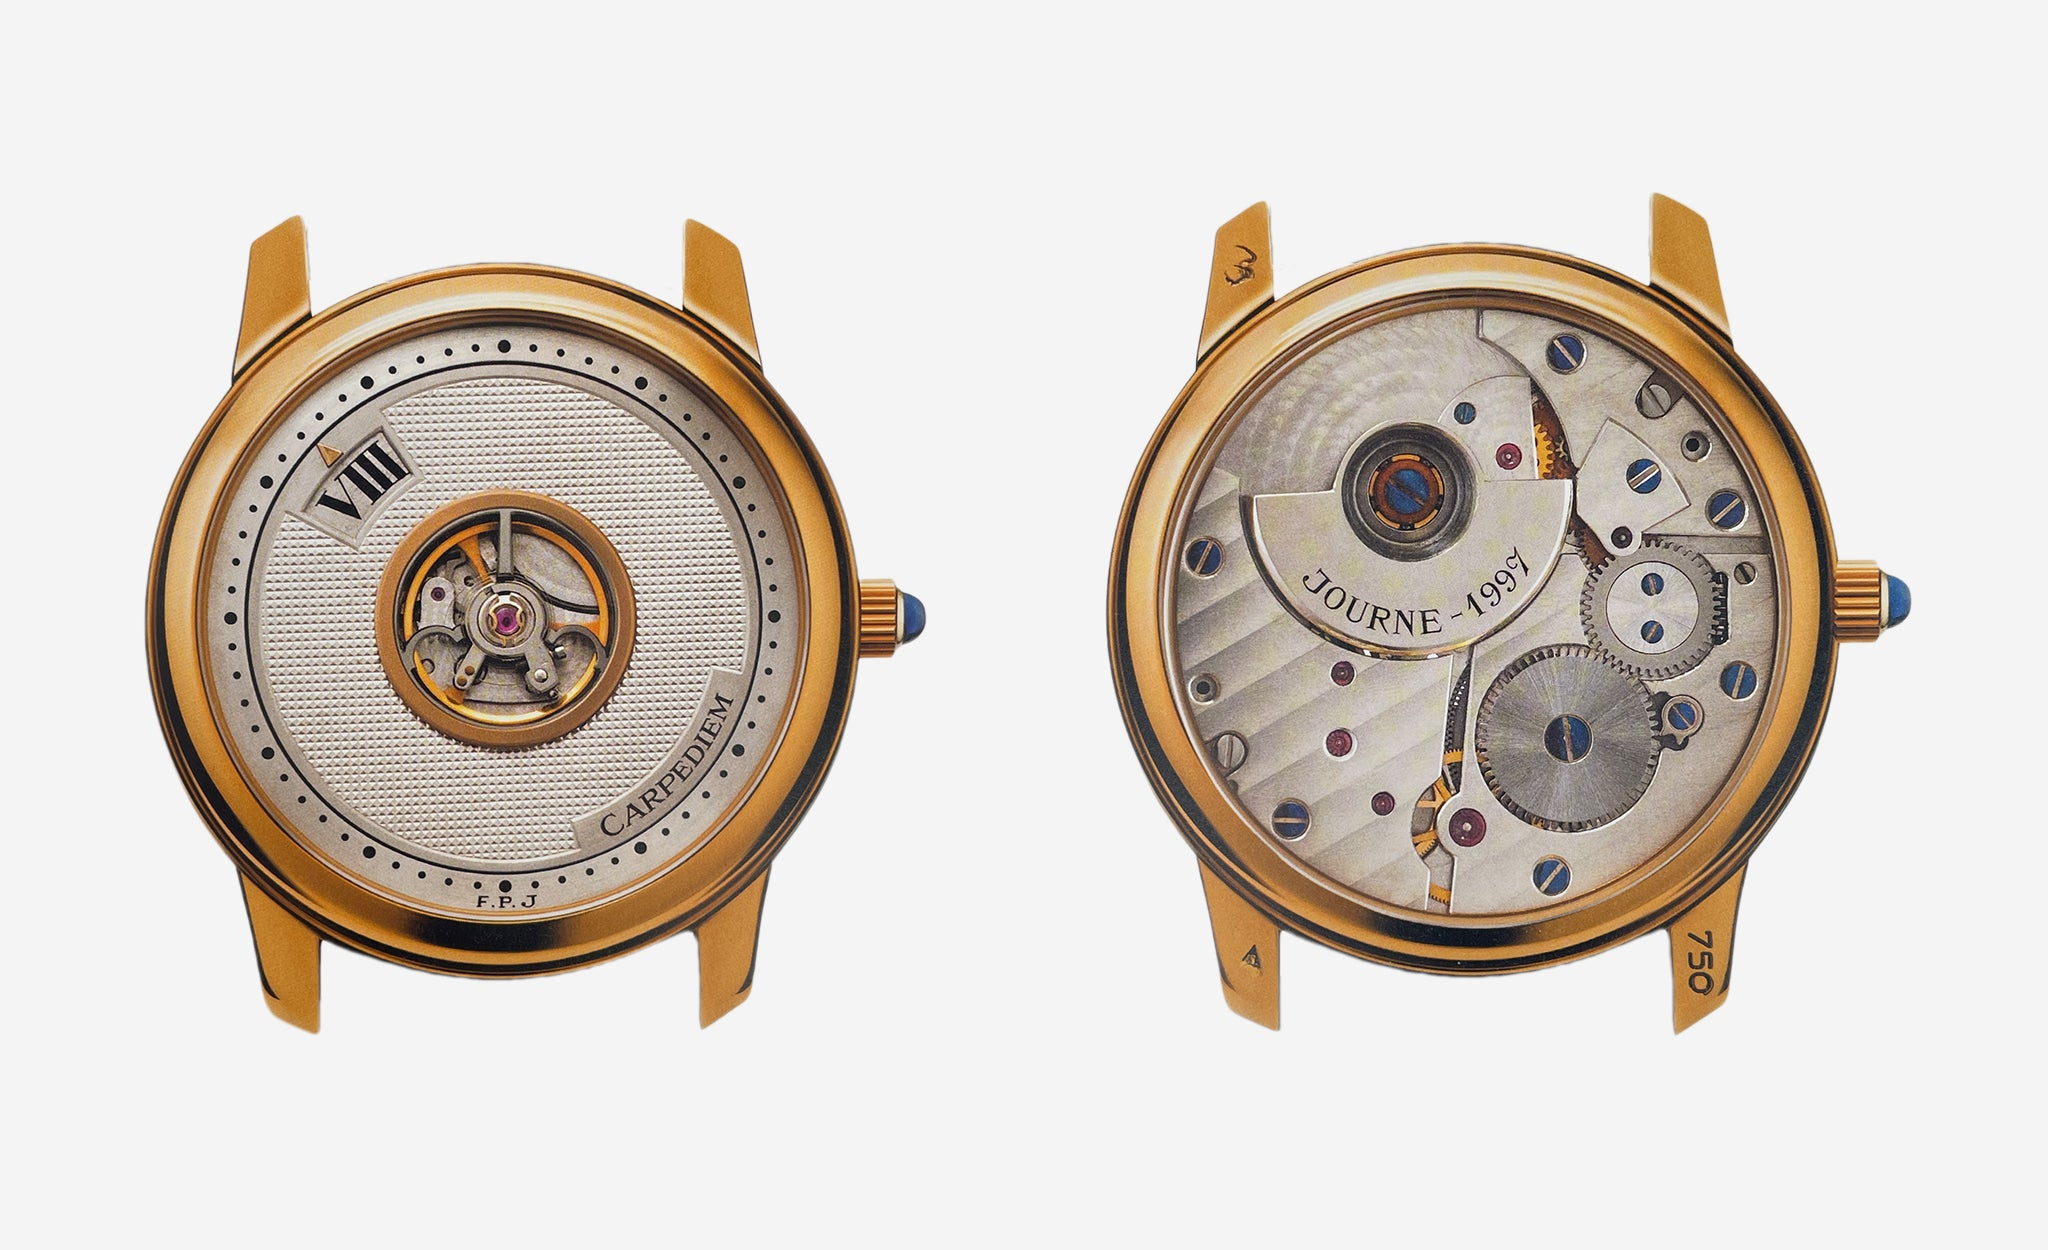 Carpe Diem watch front and back by F.P. Journe in Three Watchmakers' Unfinished Watches for A Collected Man London